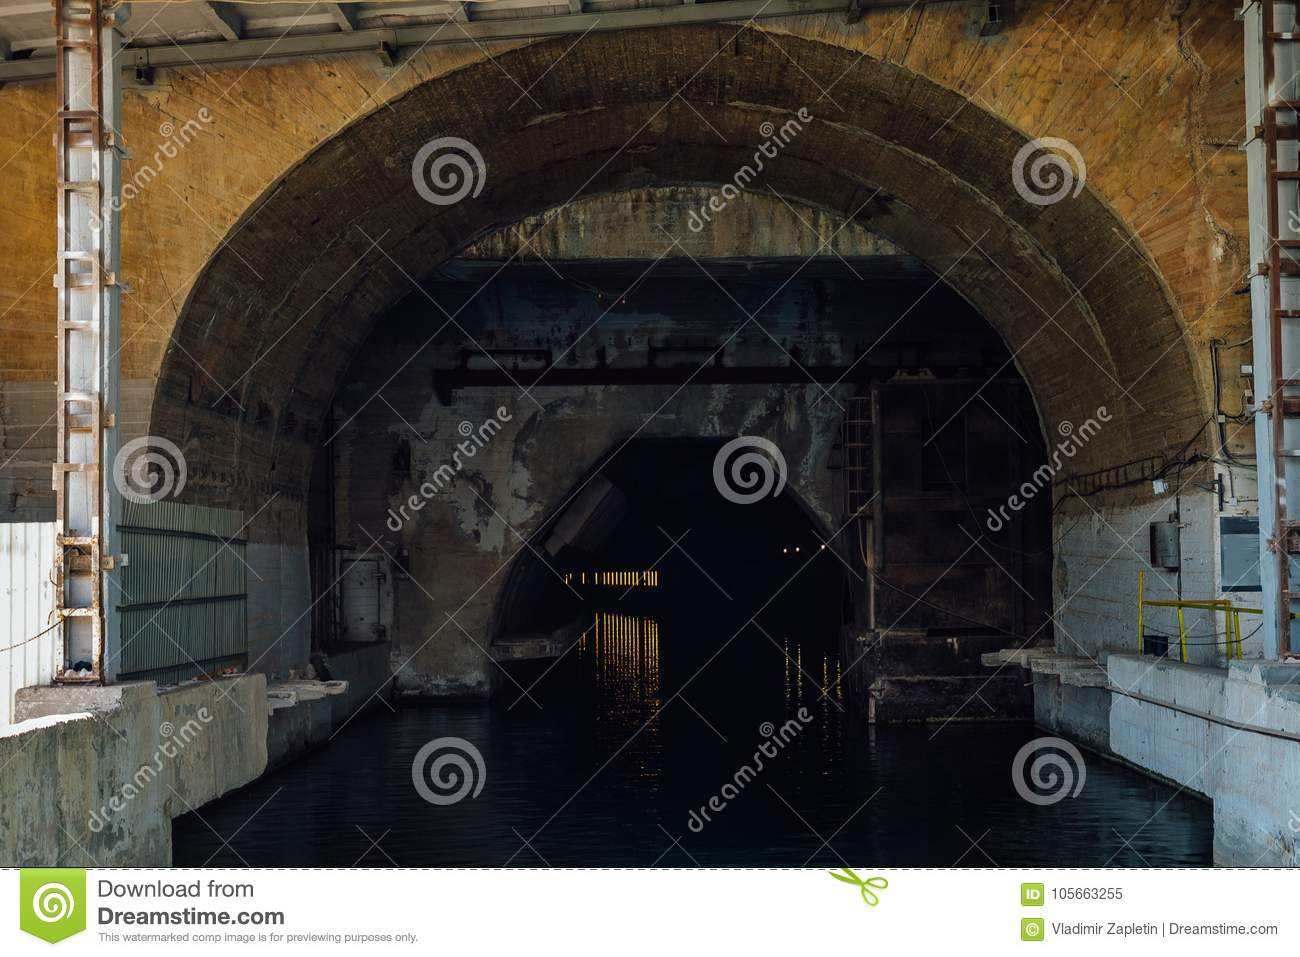 Entrance to tunnel dock for submarines. Underground submarine repairing factory in Balaklava, Crimea